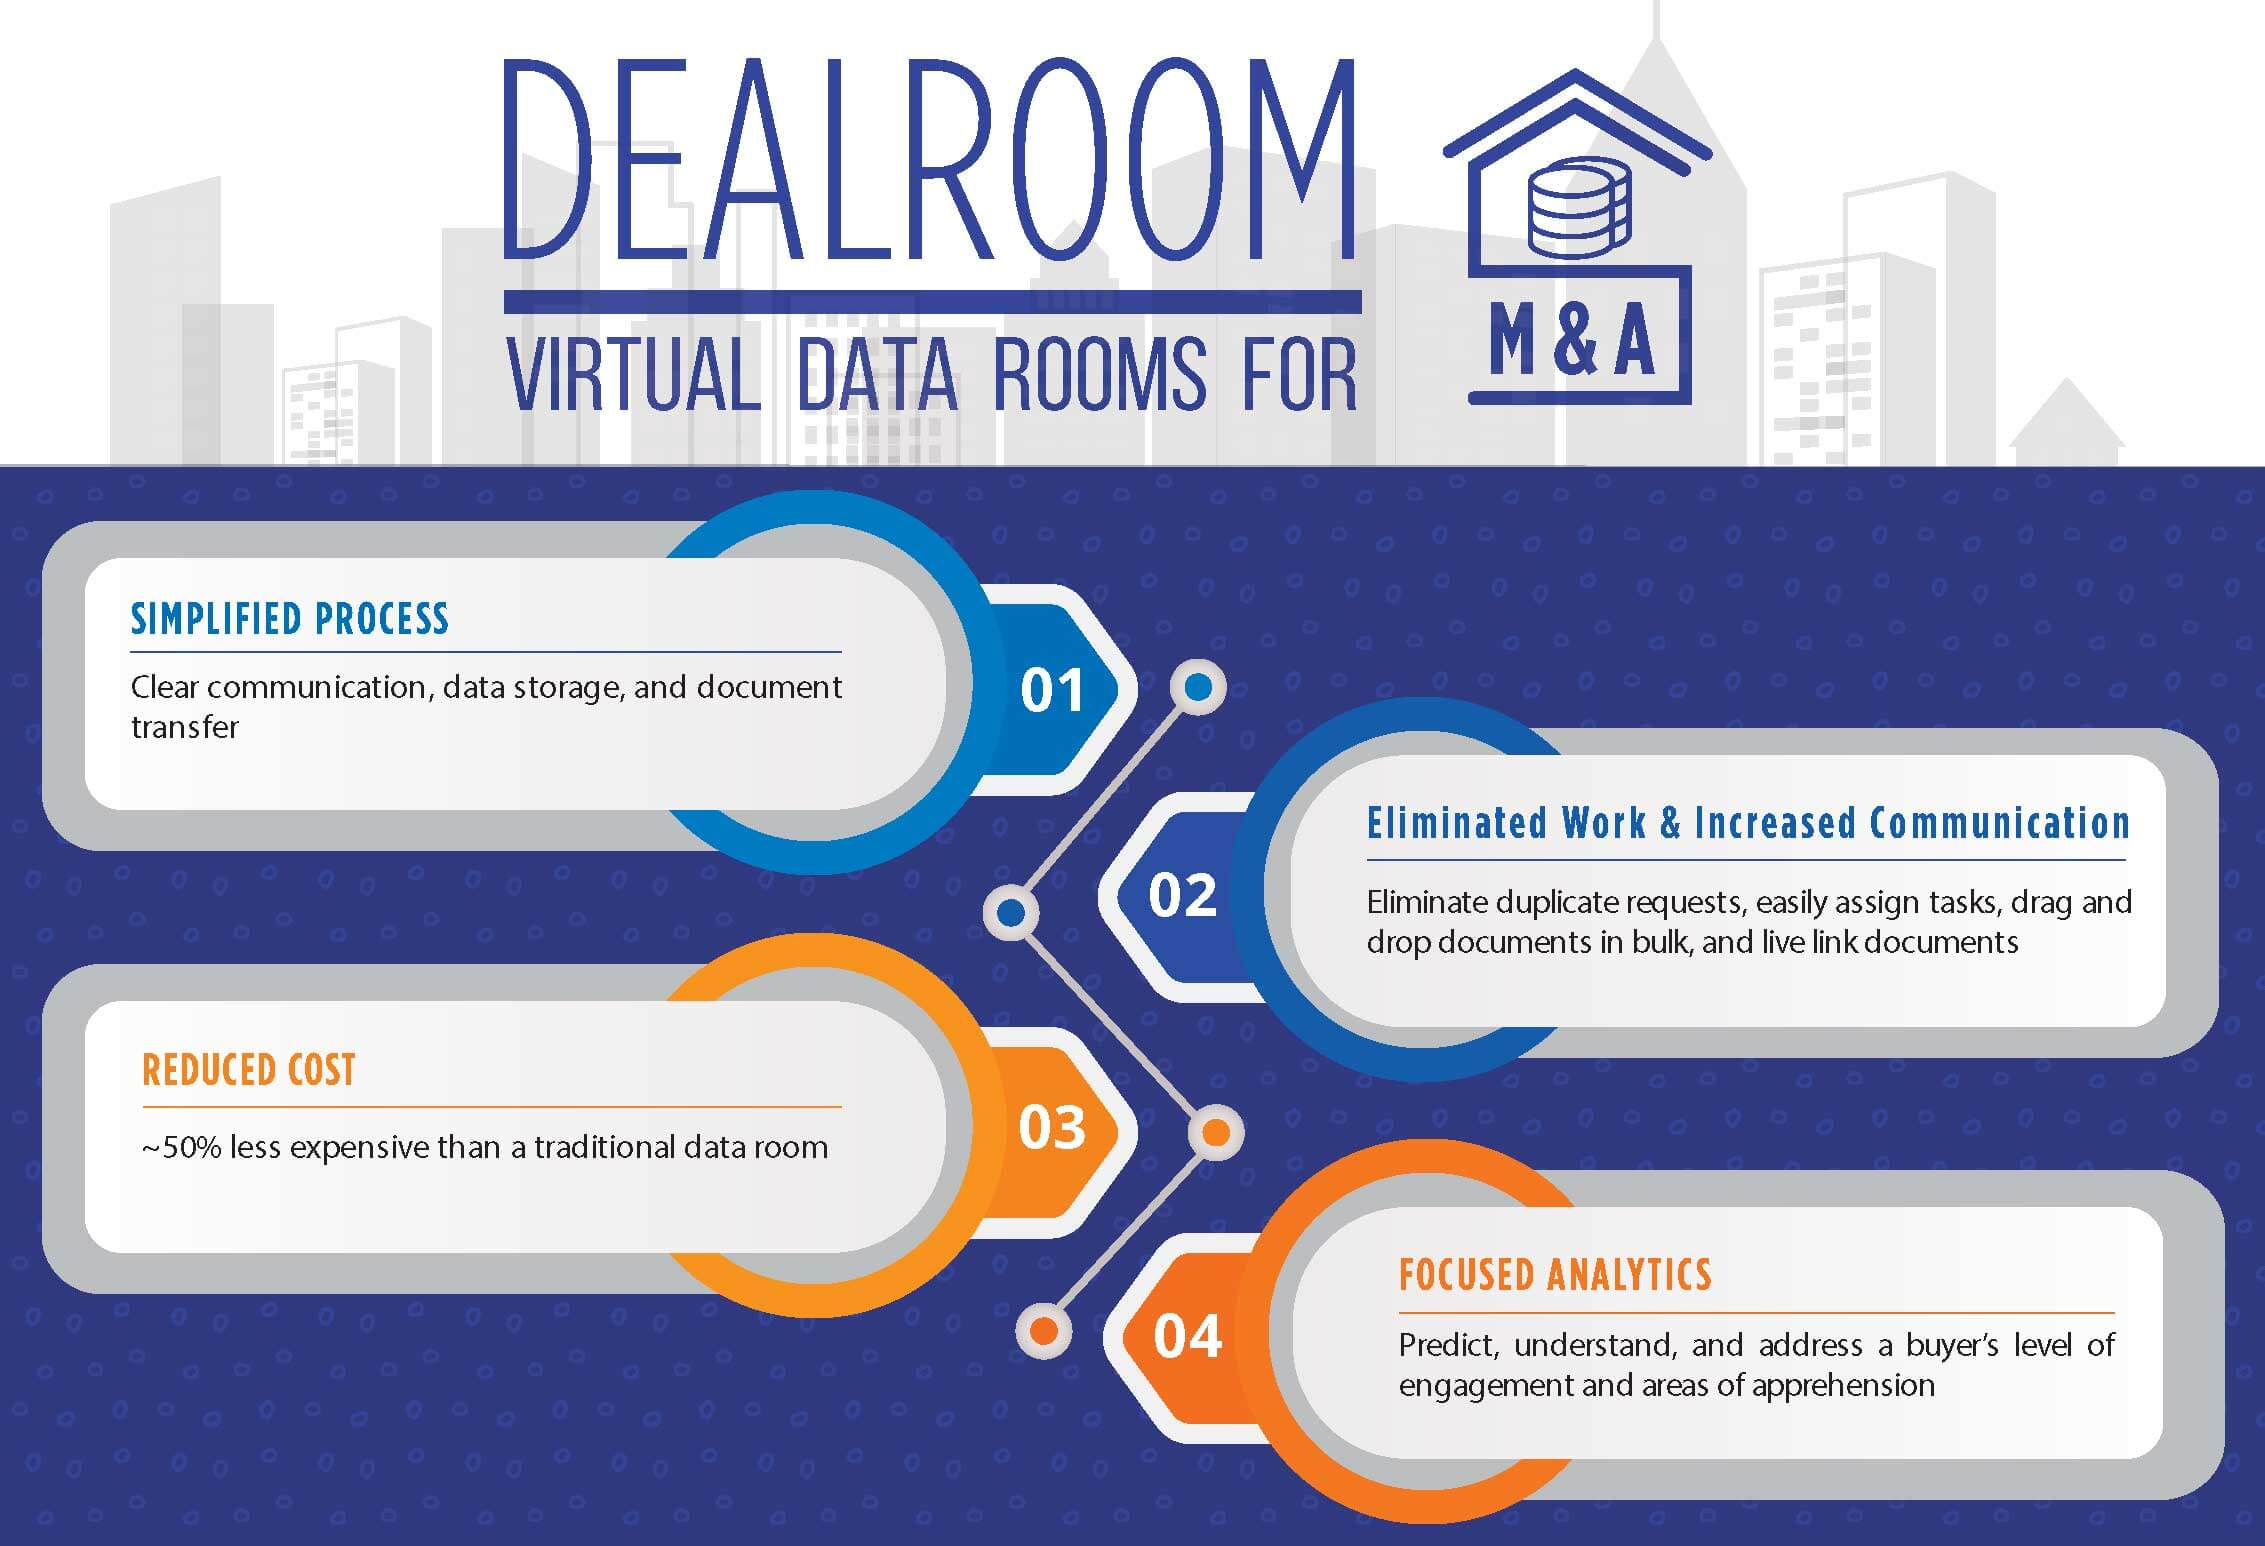 virtual data rooms for m&a